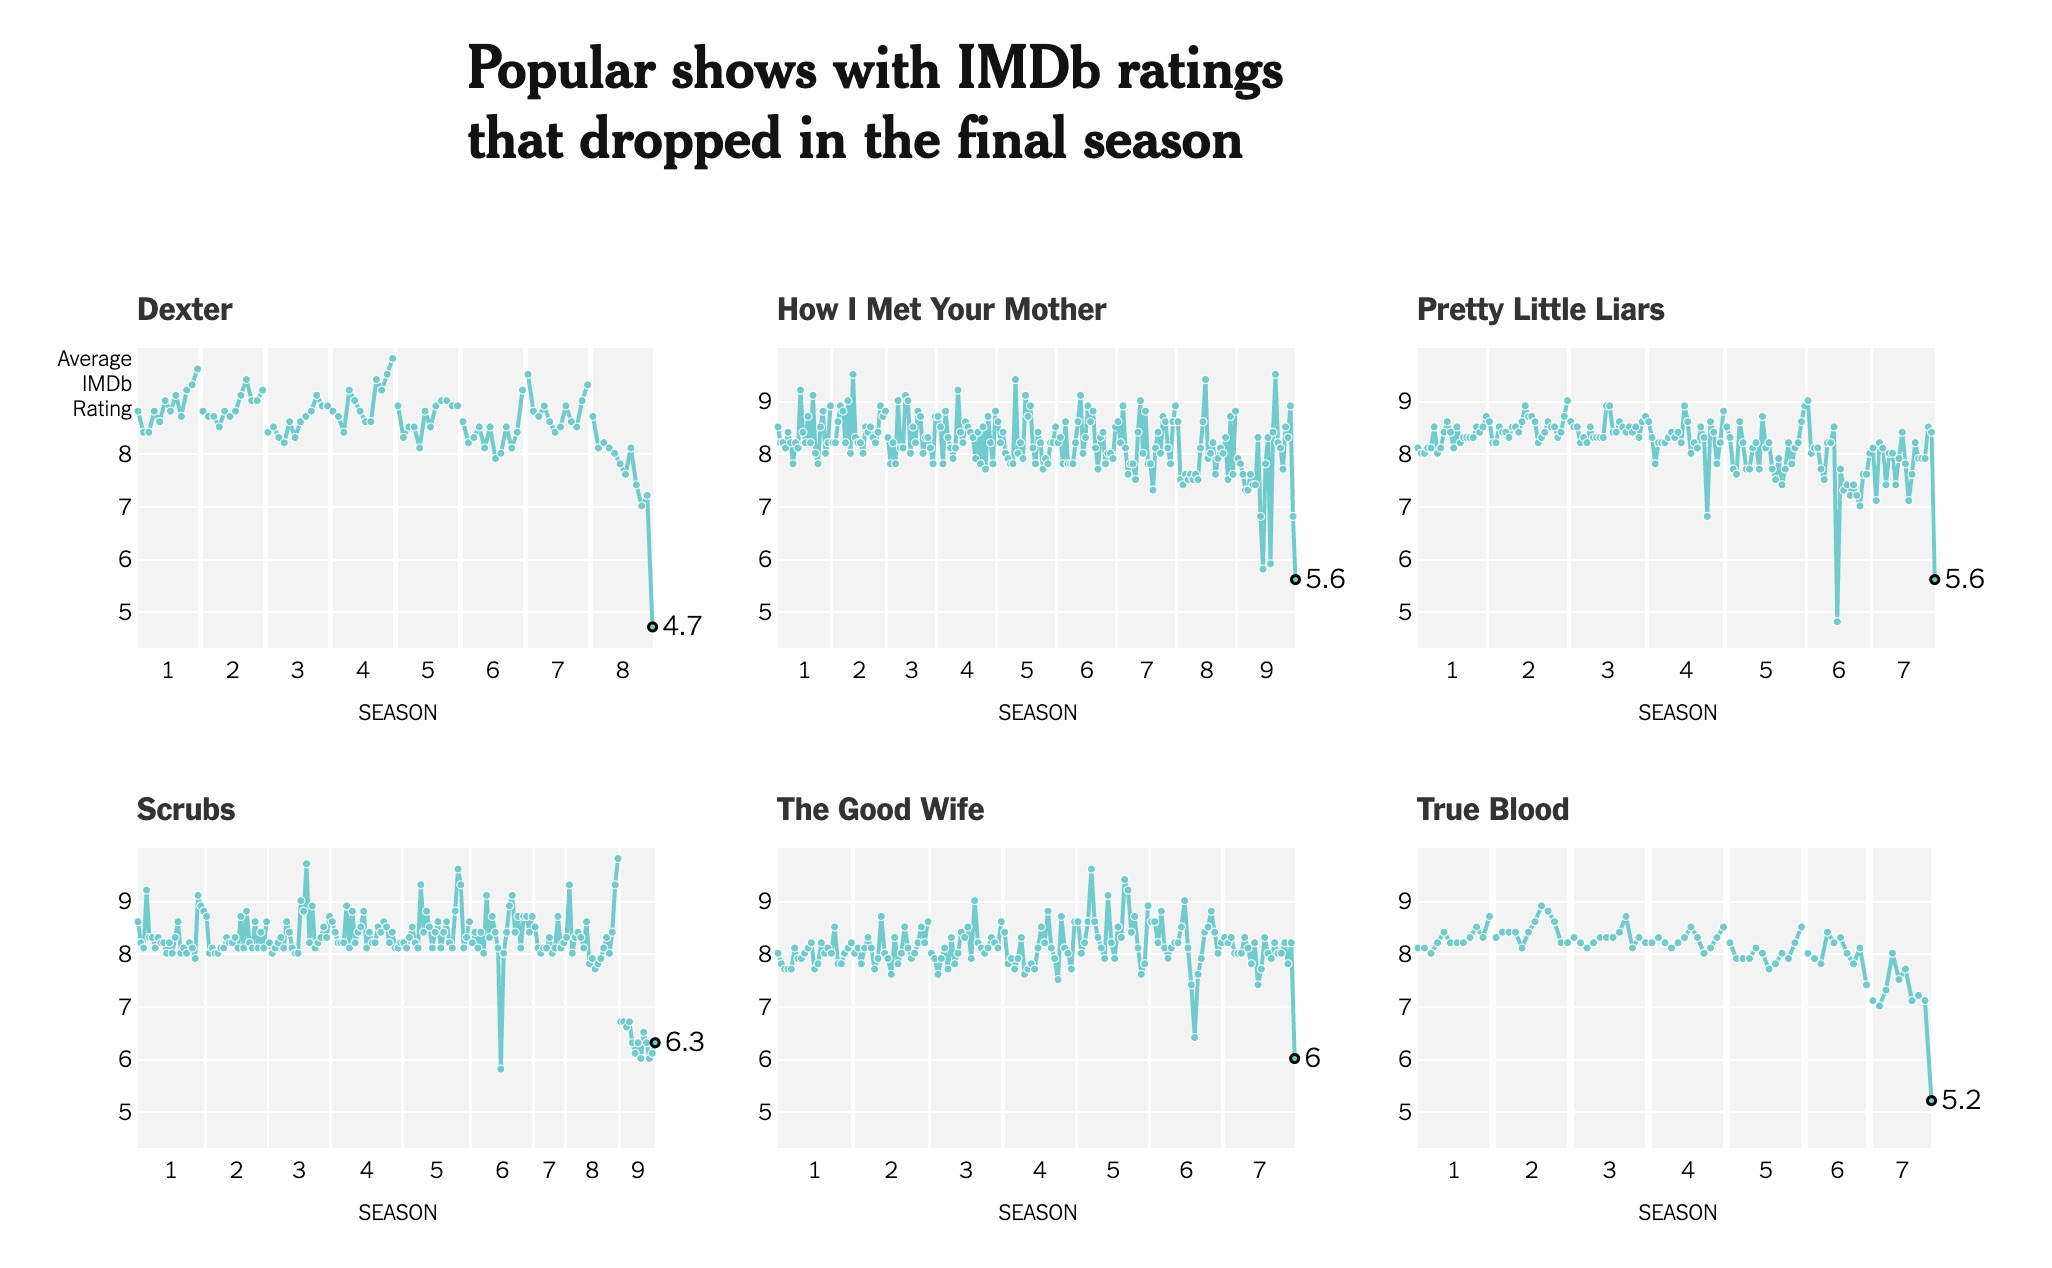 Popular shows with IMDb ratings that dropped in the final season